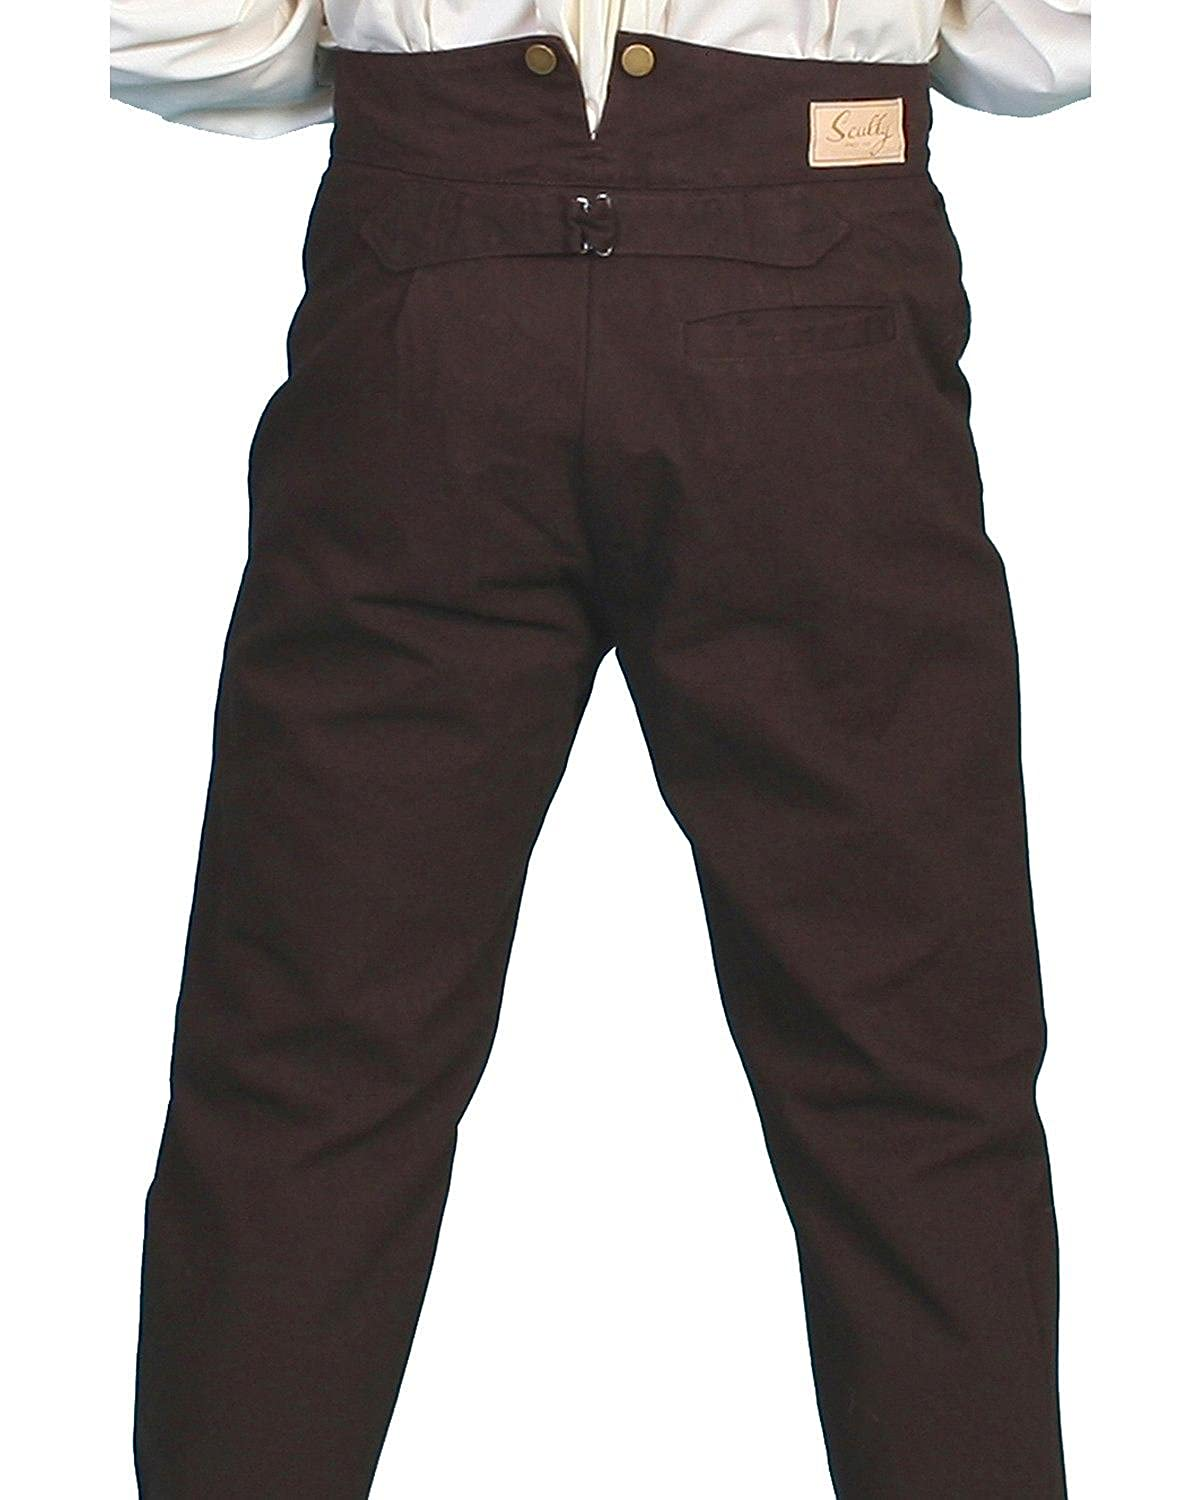 Retro Clothing for Men | Vintage Men's Fashion Scully Rangewear Mens Rangewear Canvas Pants $51.90 AT vintagedancer.com